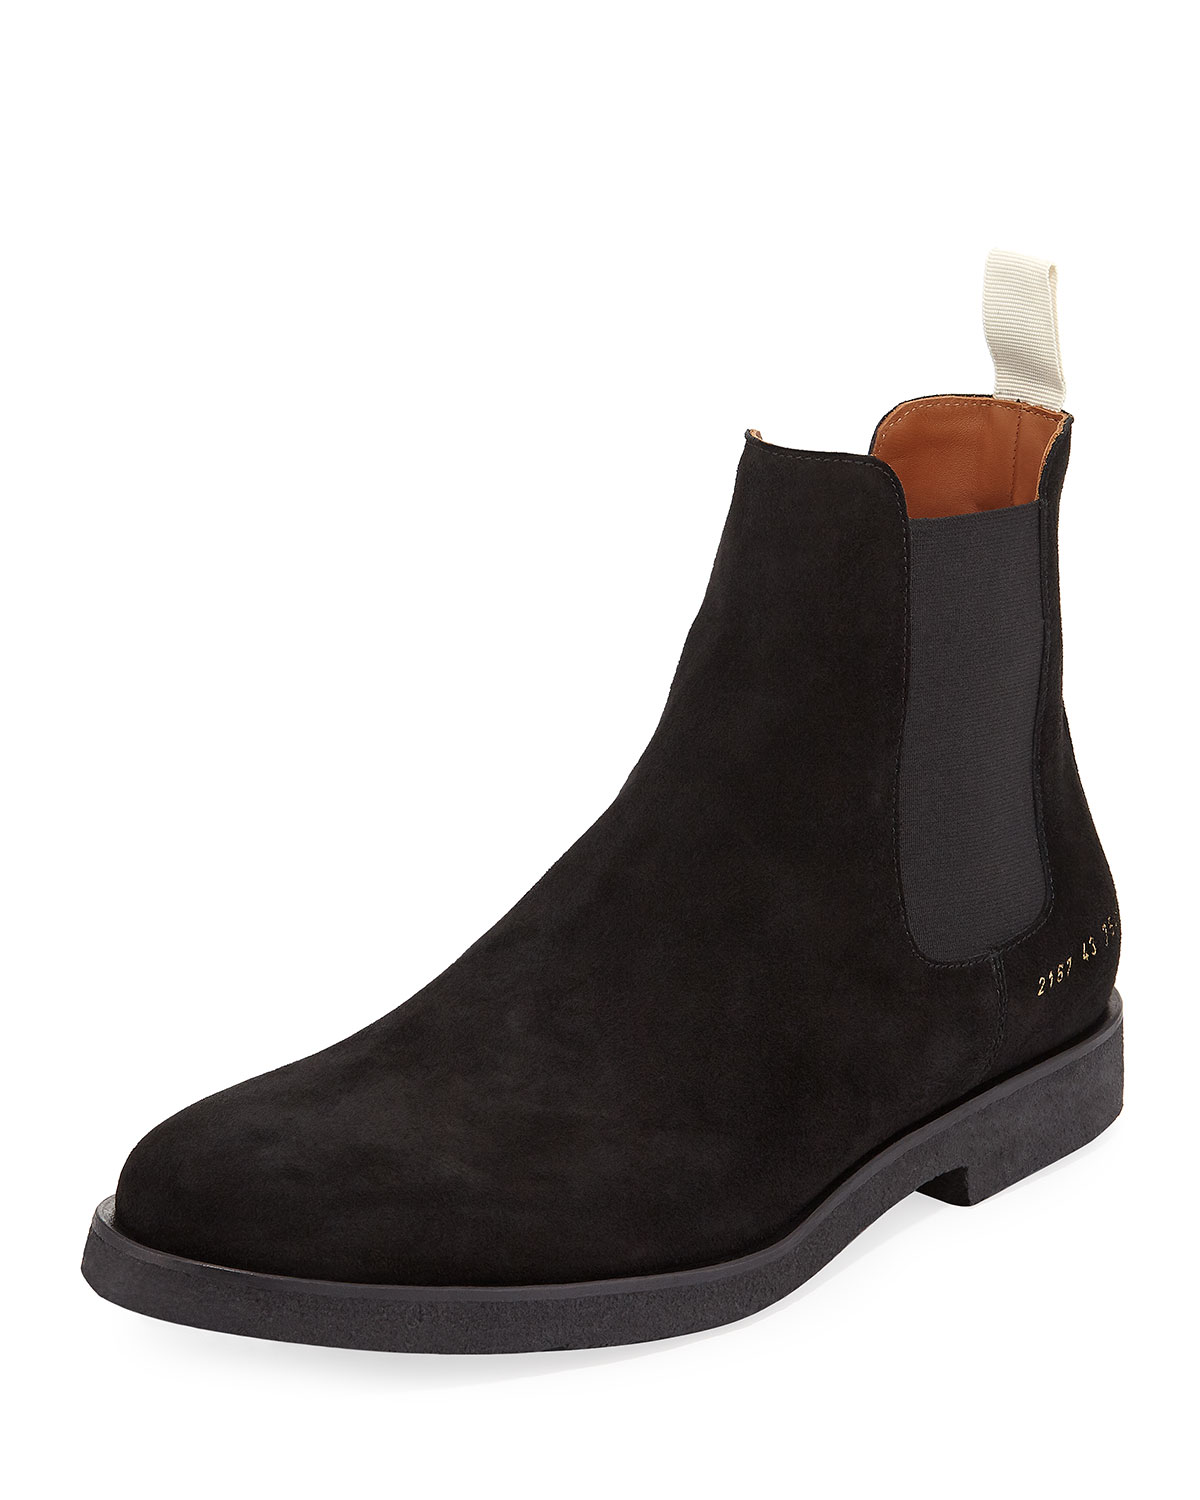 COMMON PROJECTS MEN'S CALF SUEDE CHELSEA BOOT, BLACK